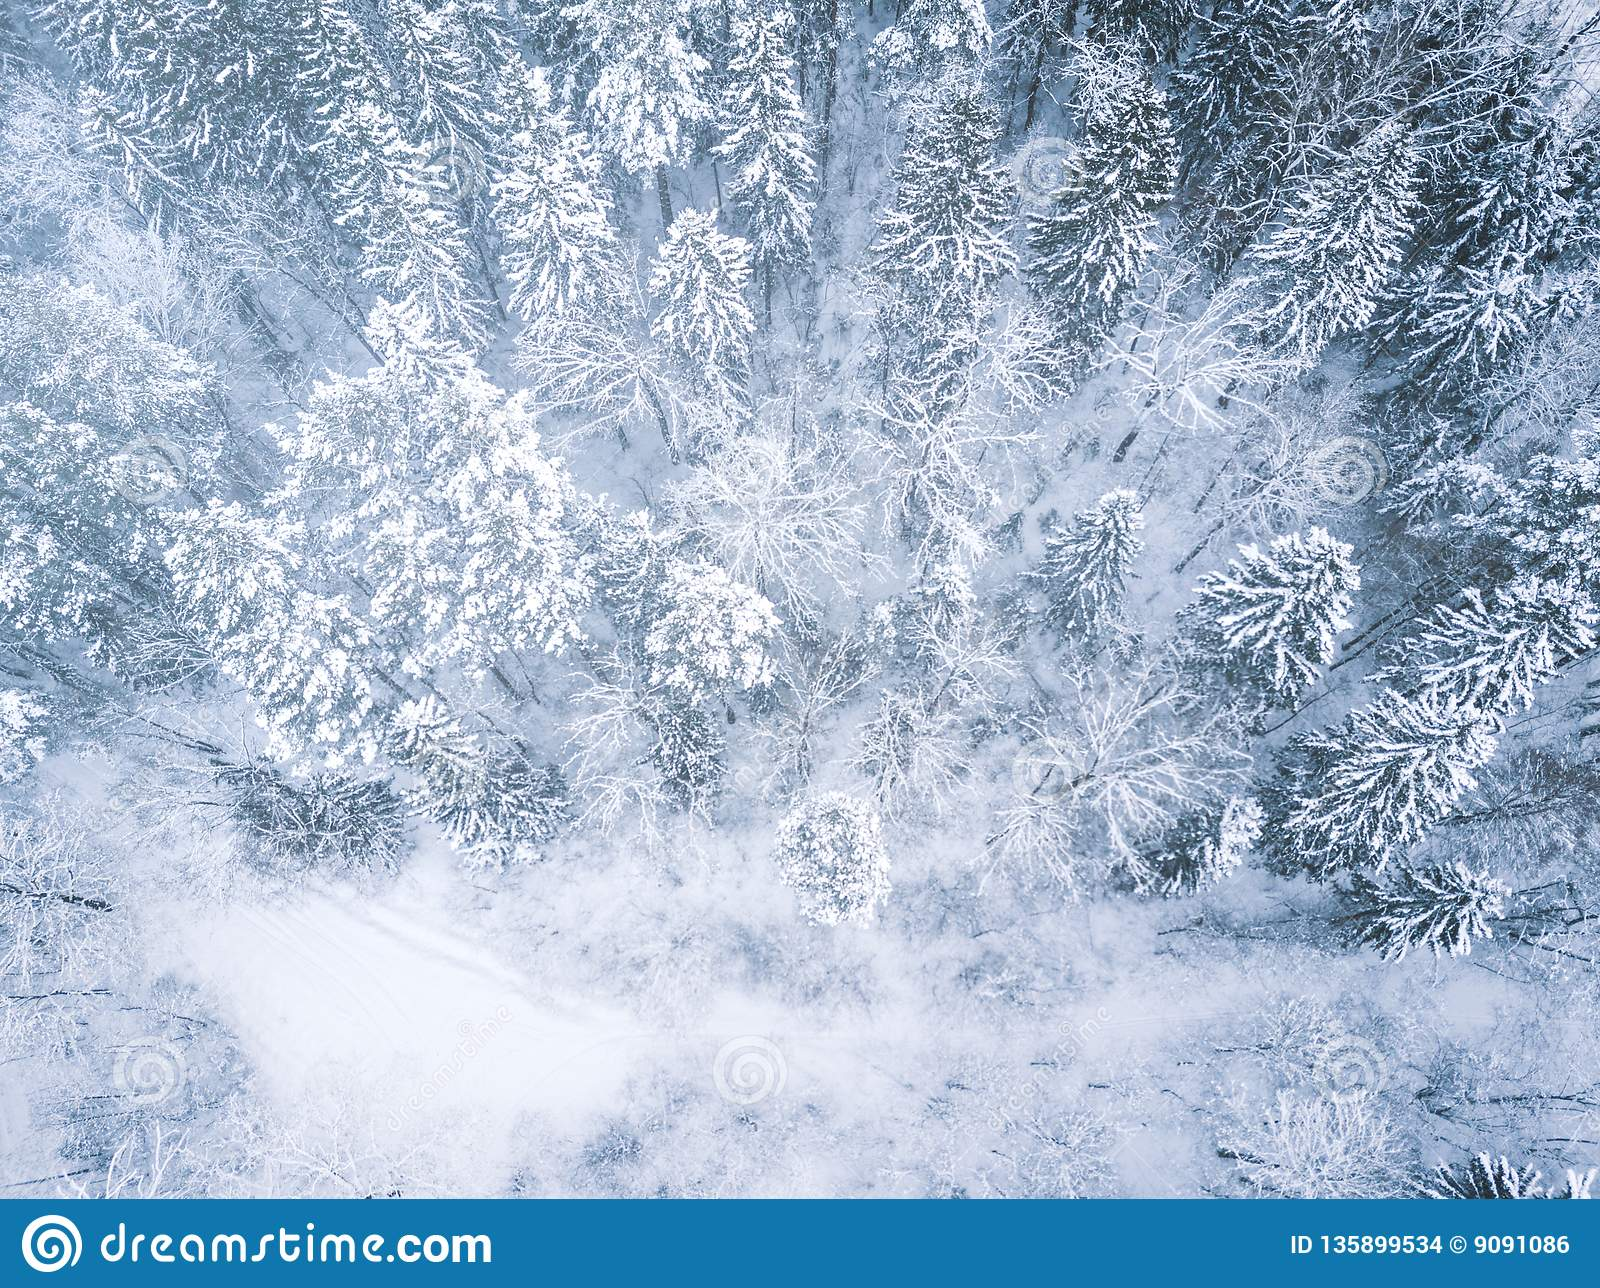 Aerial Winter Forest View Drone Landscape Fly Above